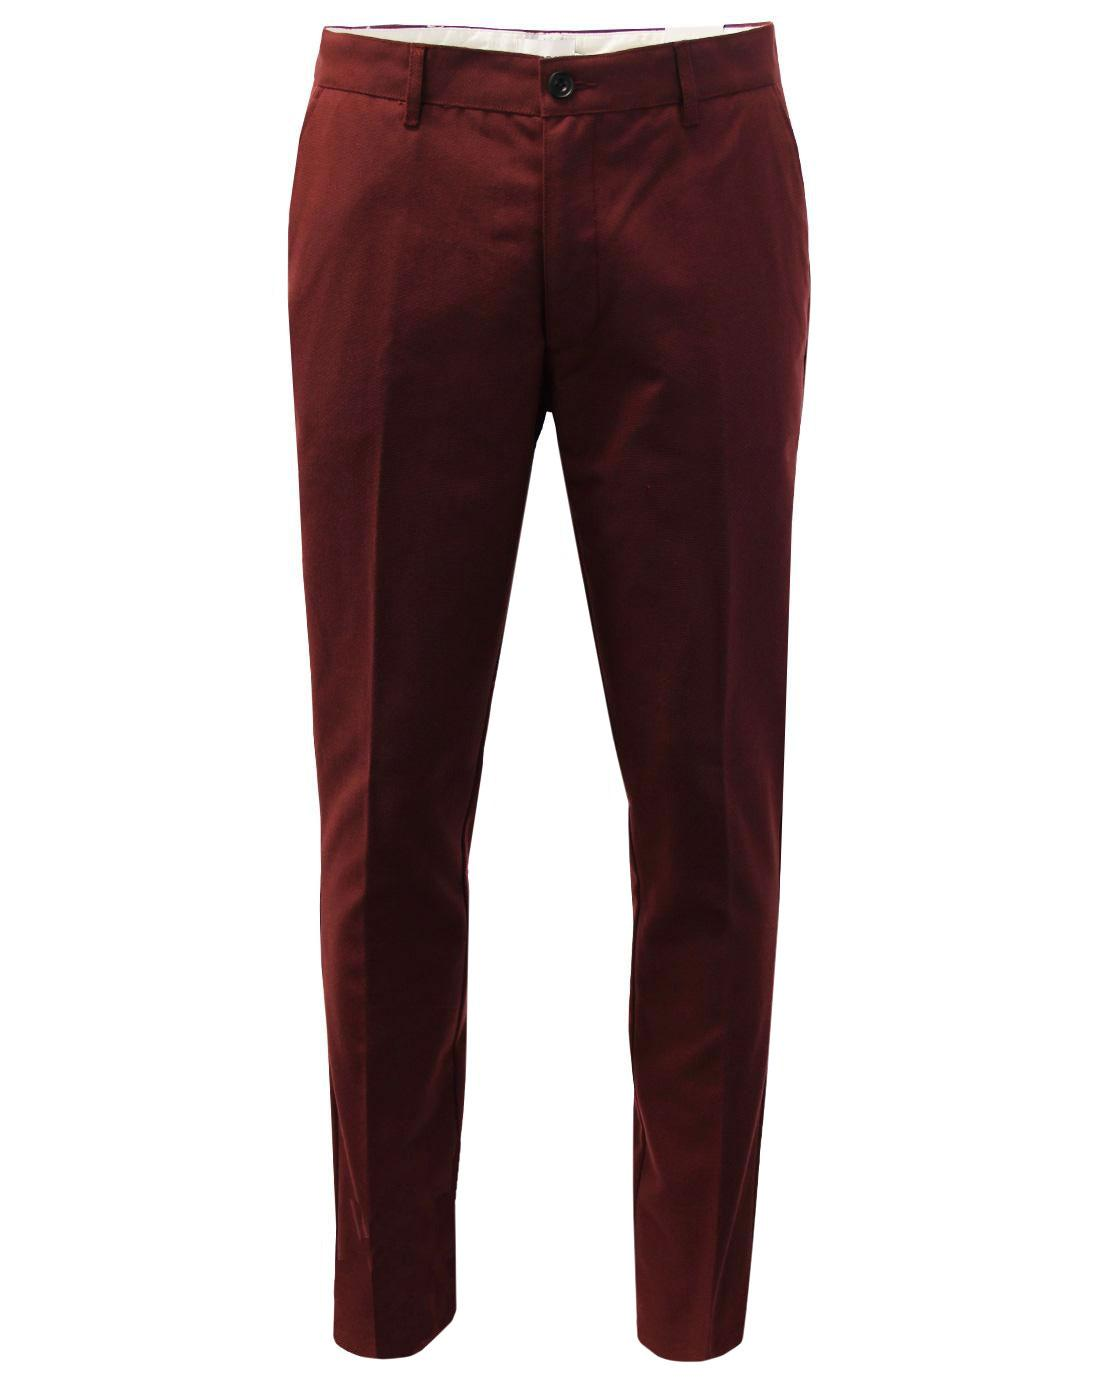 Elm FARAH Men's 60s Mod Slim Hopsack Trousers (FR)